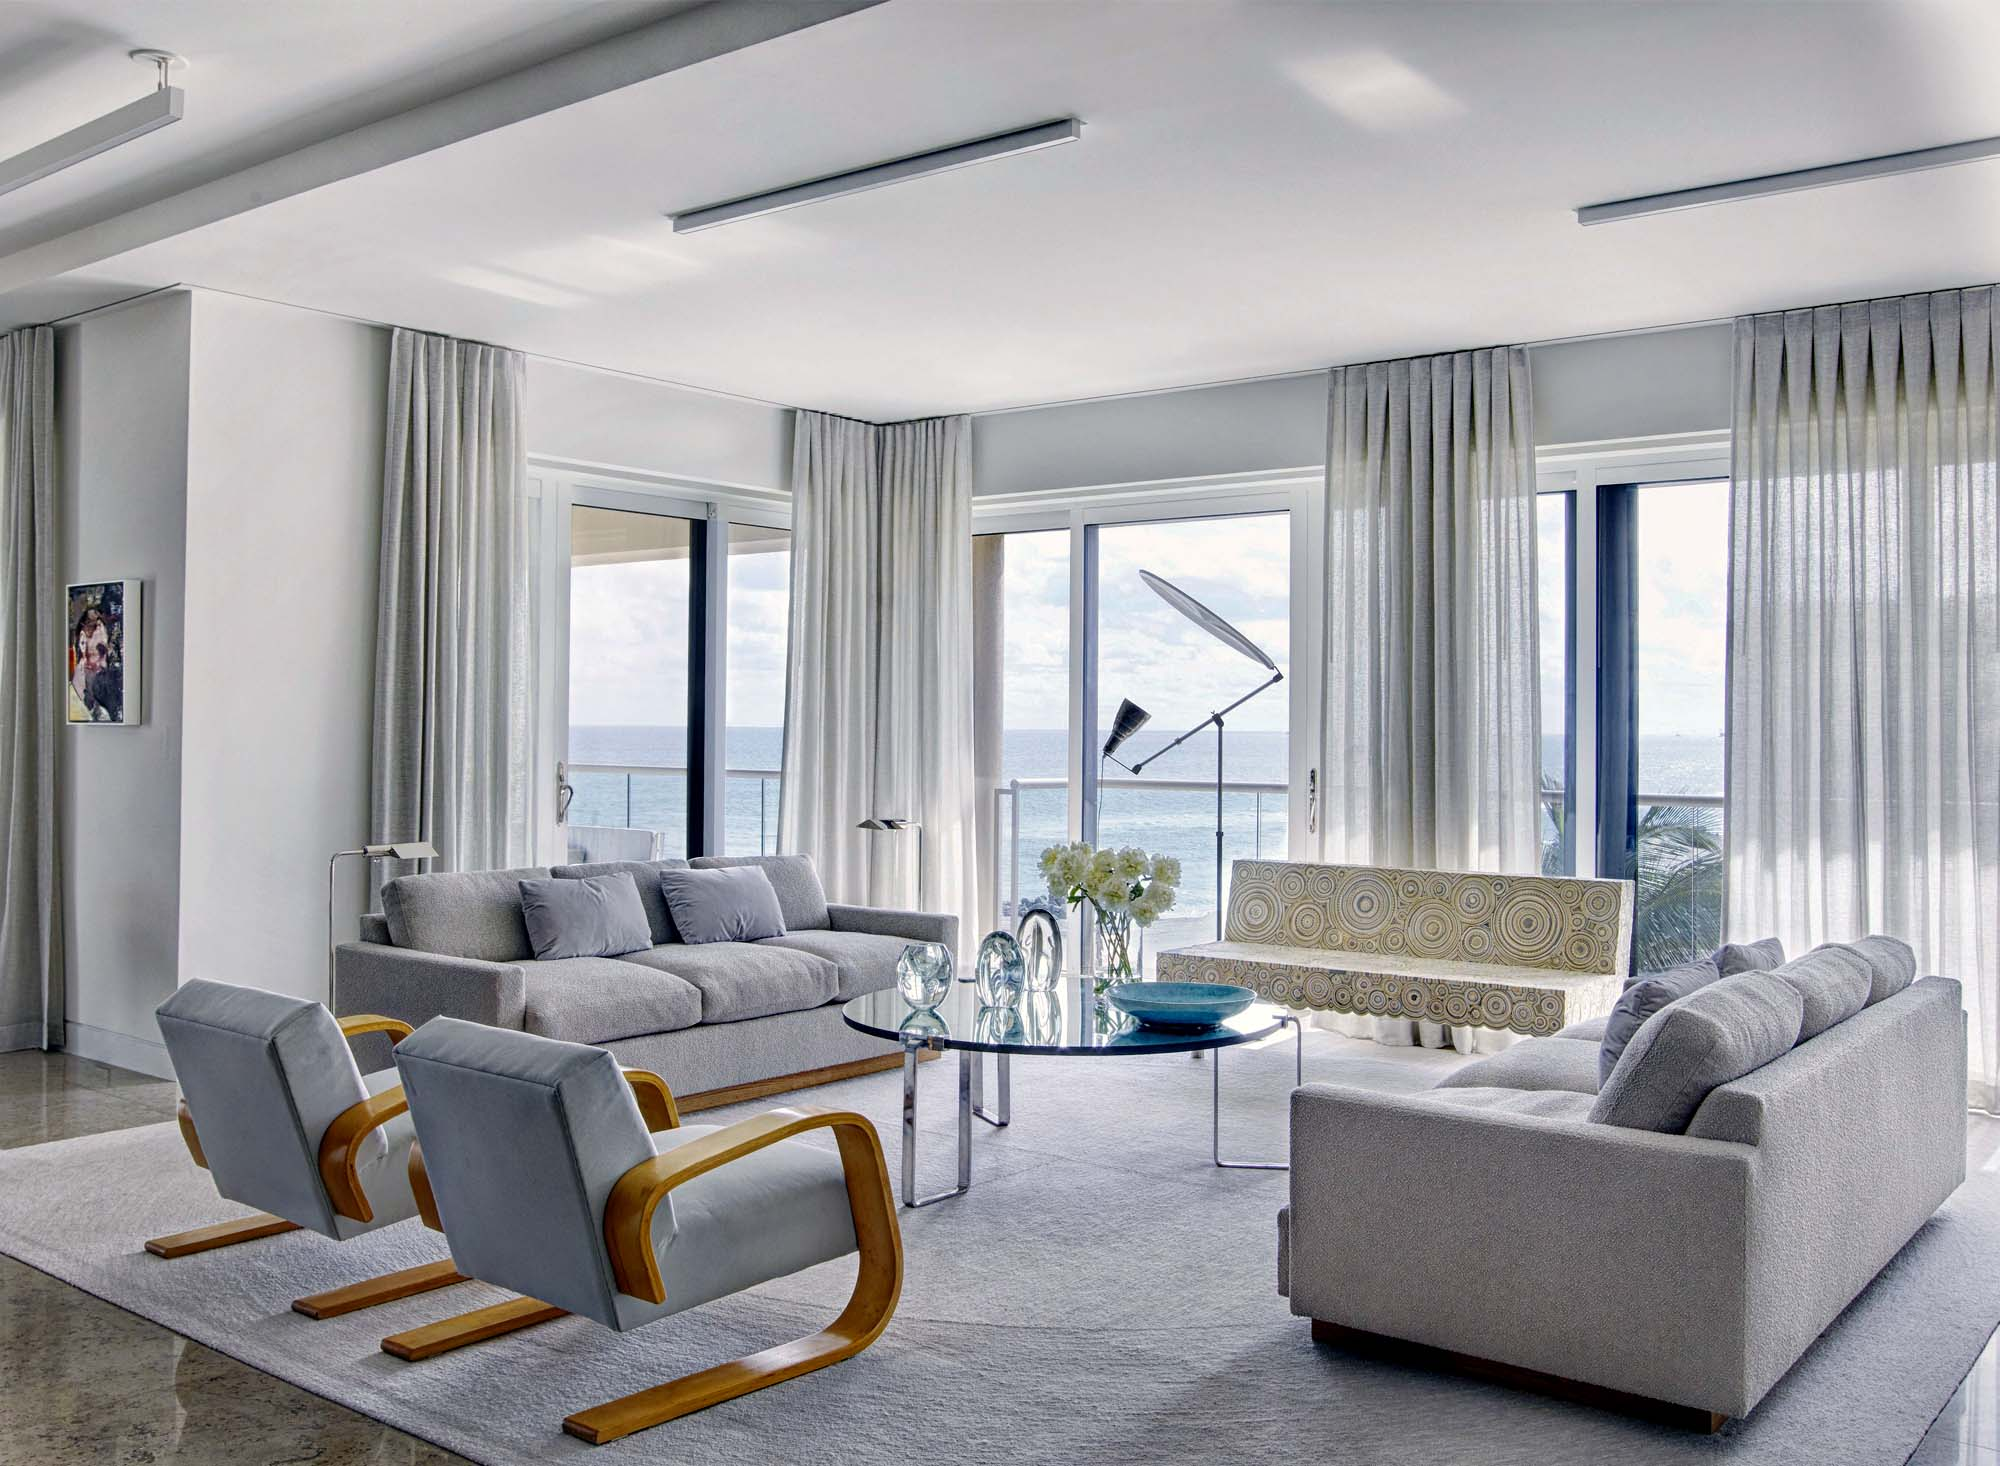 Beautiful Feng Shui Living Room Design Lots of air and natural light gray and white palette